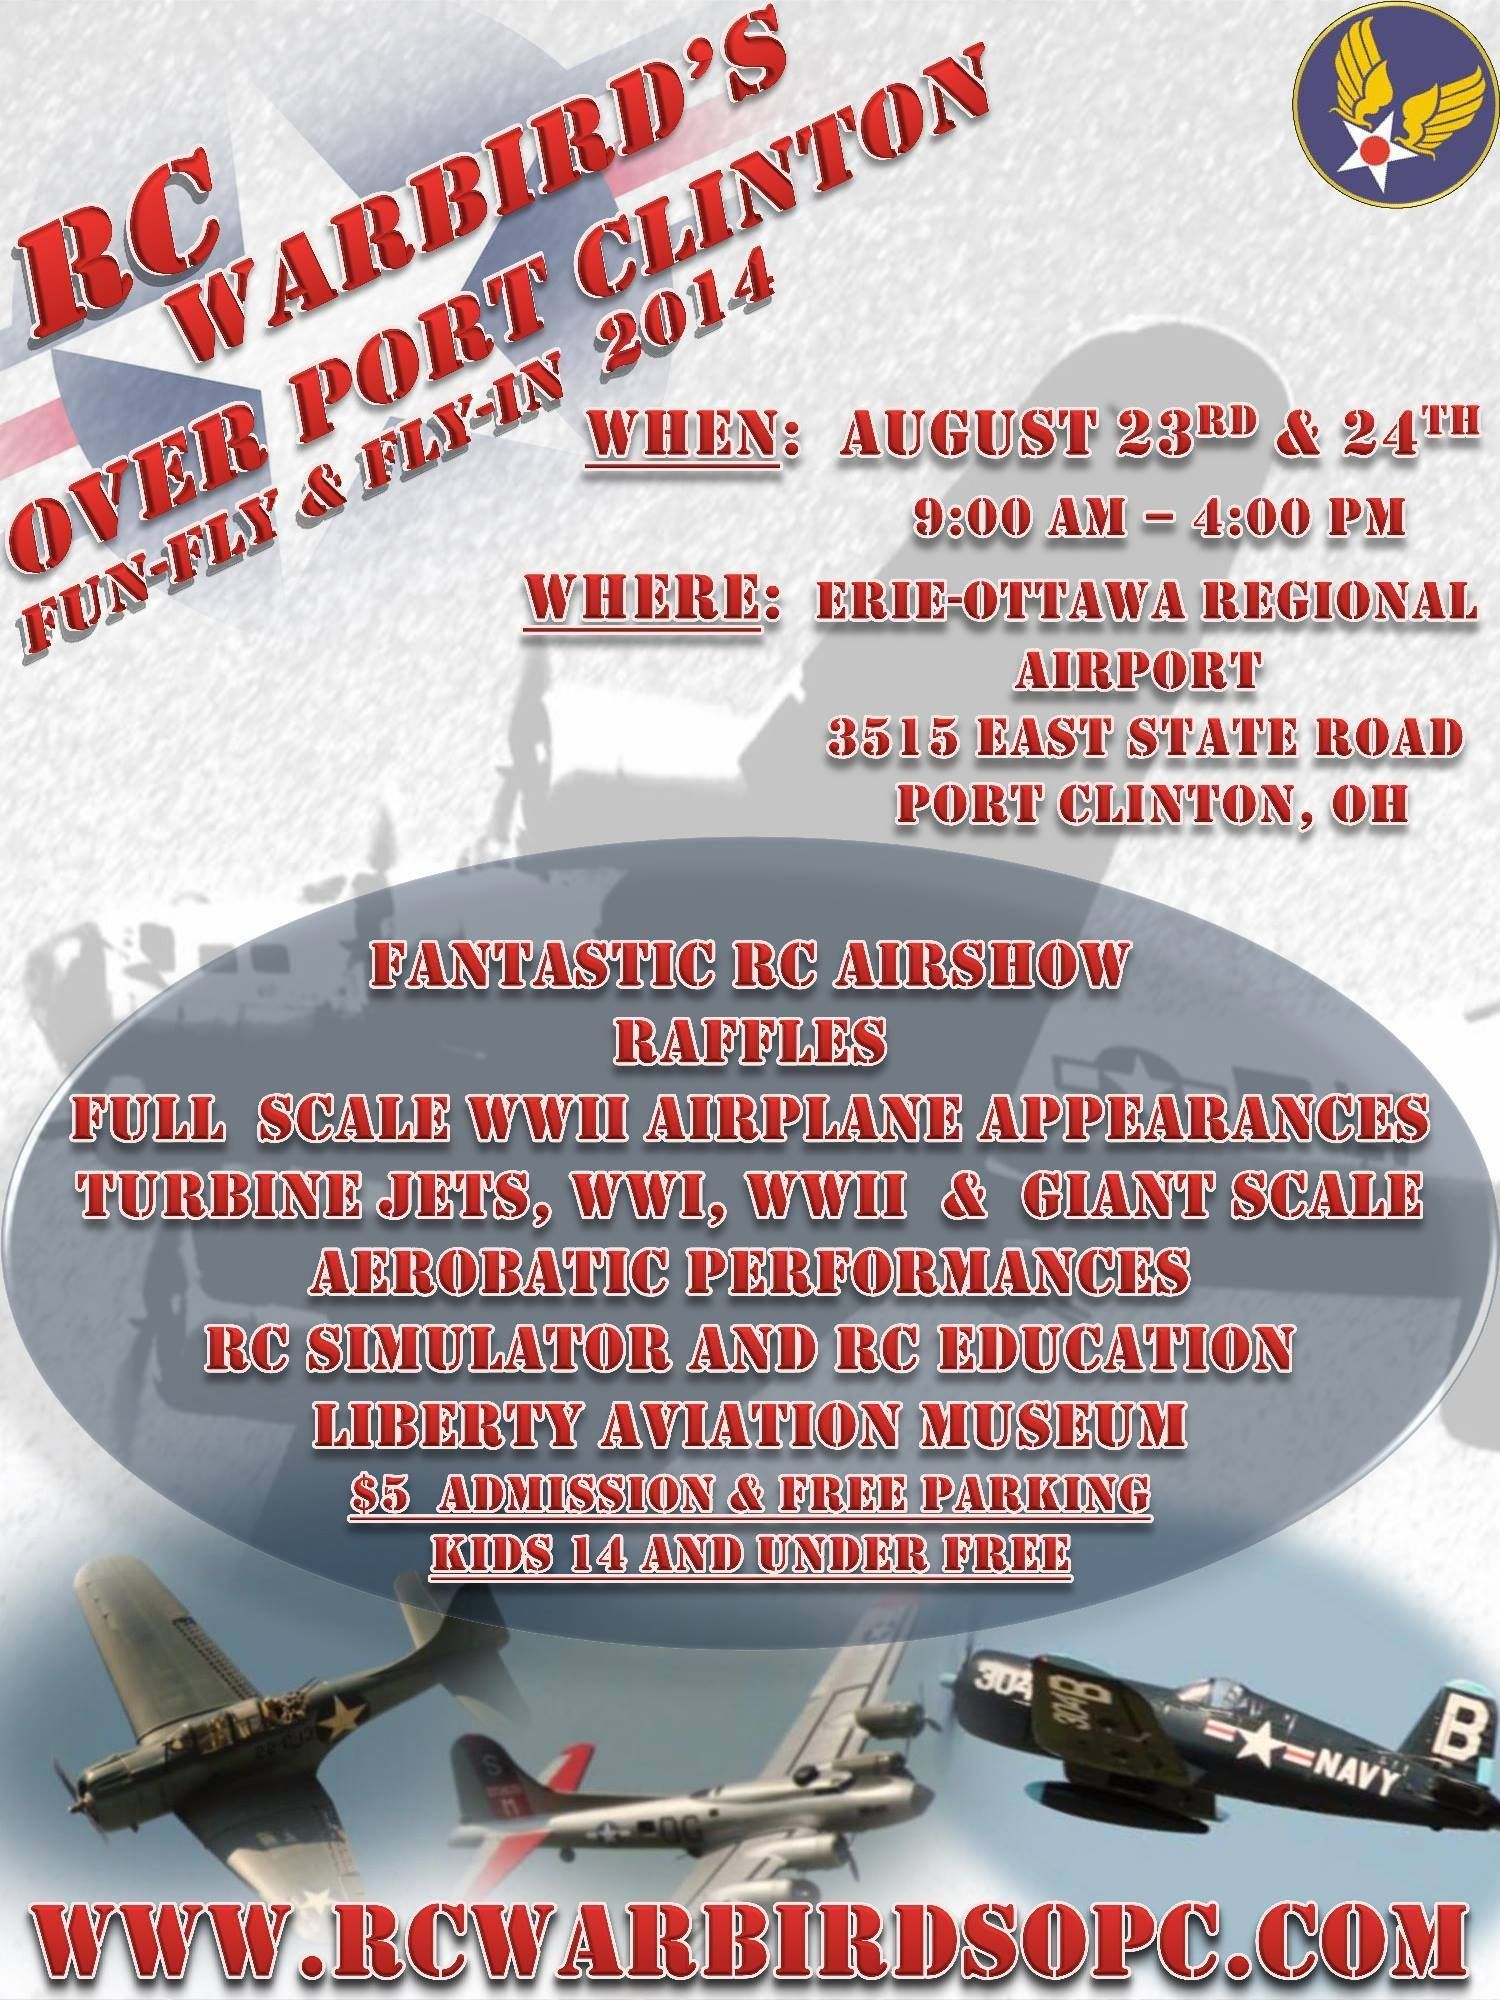 Pin on Events at the Liberty Aviation Museum